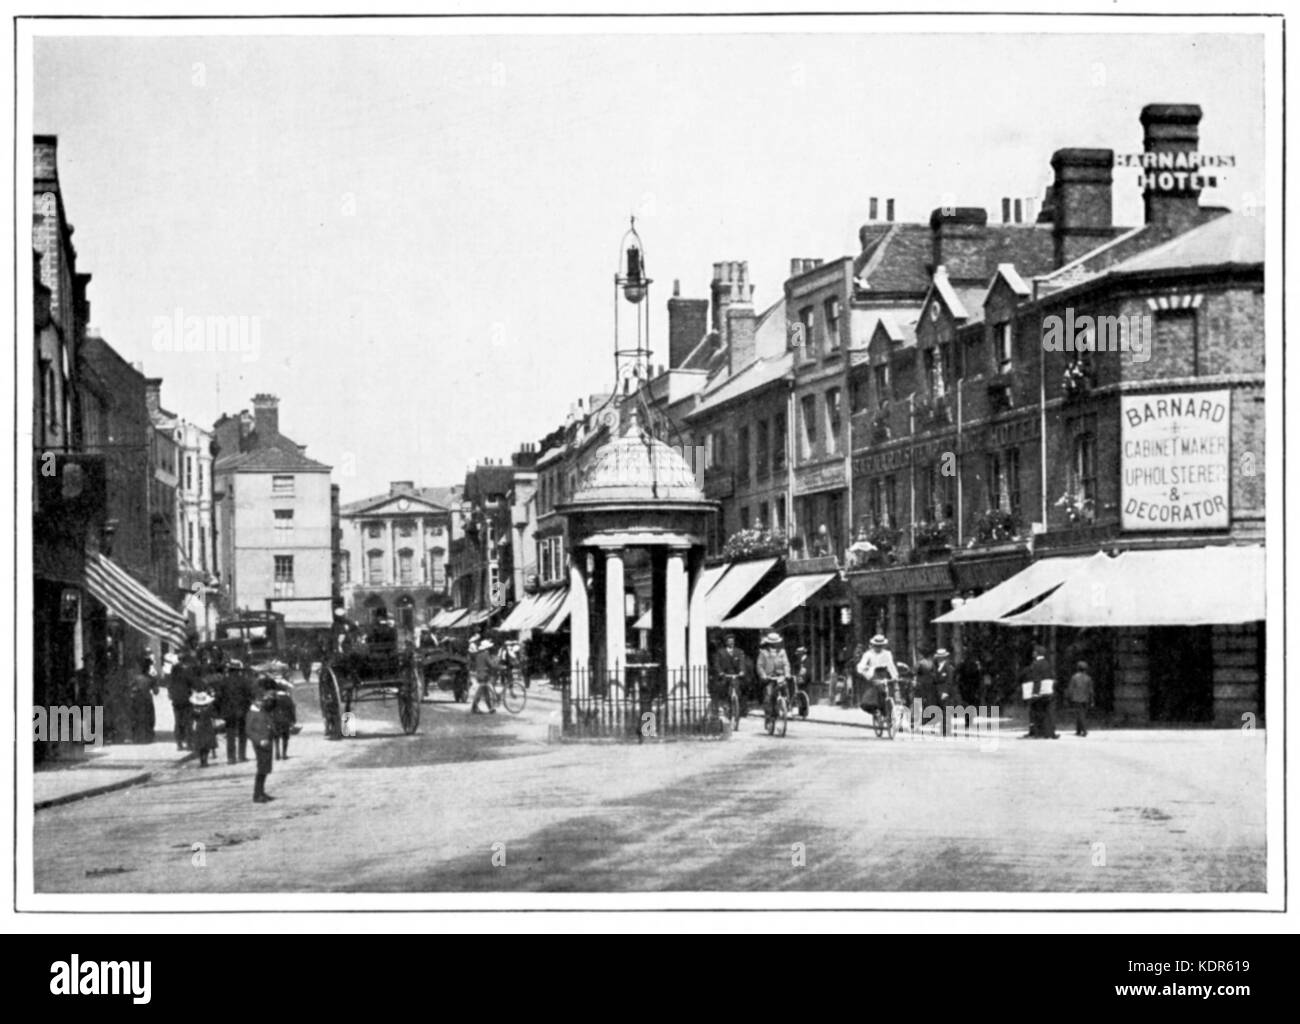 Chelmsford High Street in 1900 - Stock Image